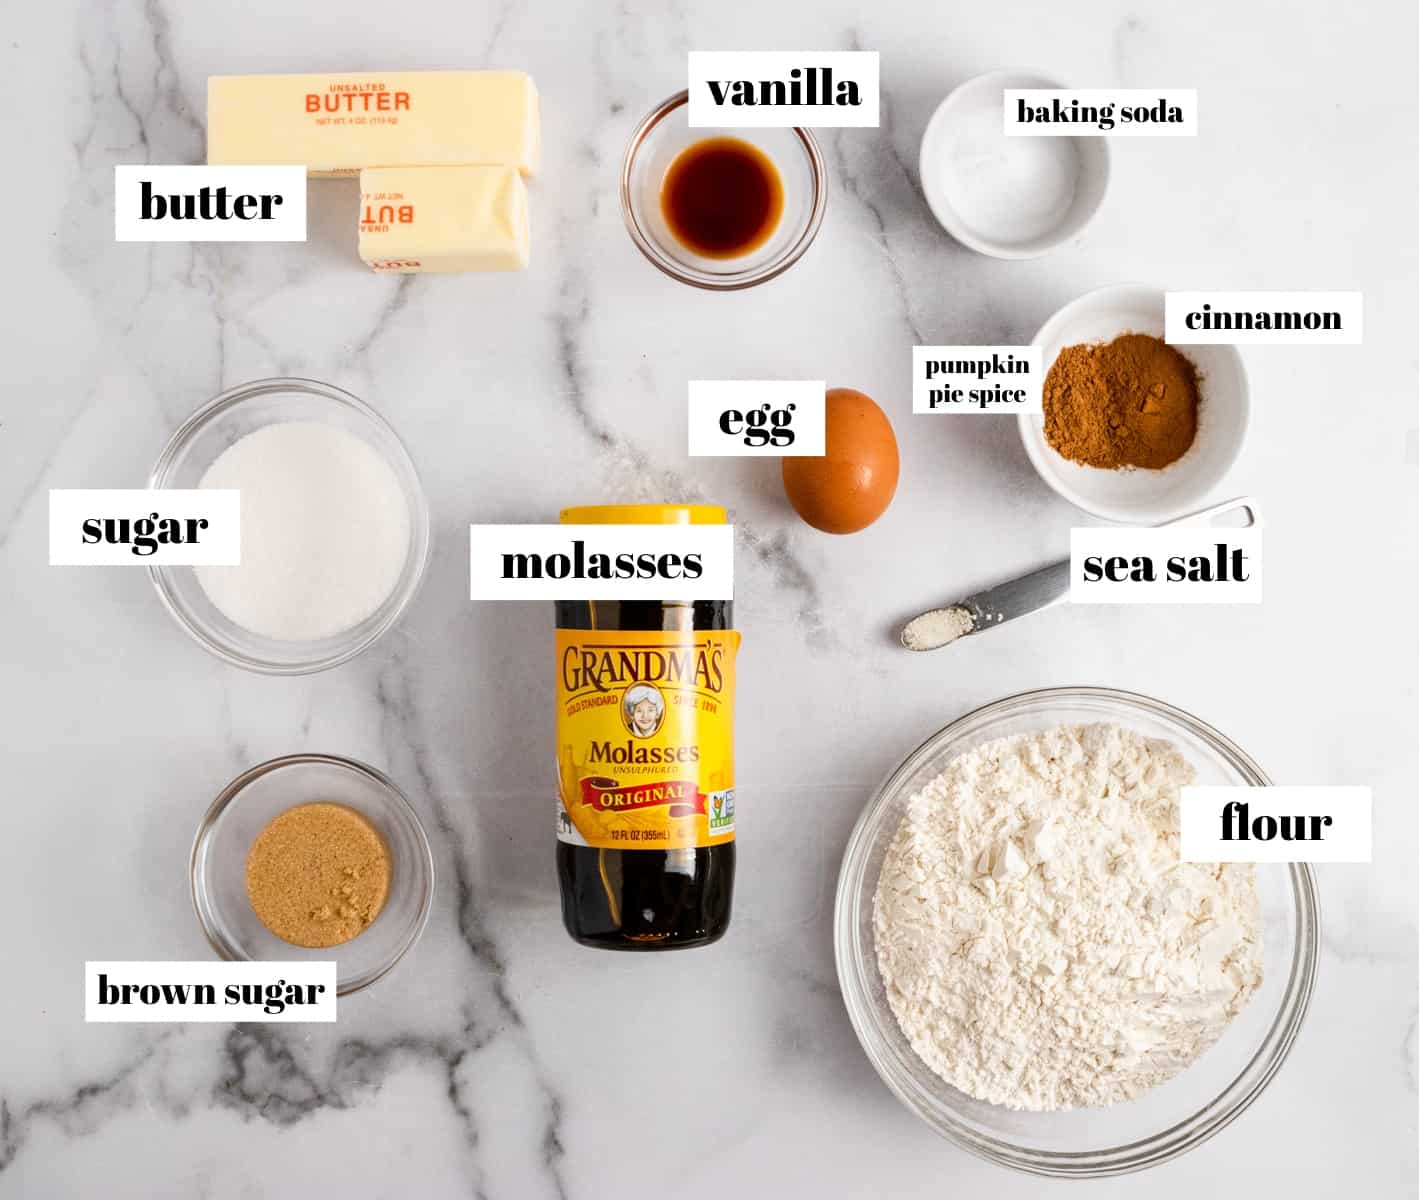 Butter, flour, pumpkin spice, cinnamon, molasses and other ingredients labeled on counter.